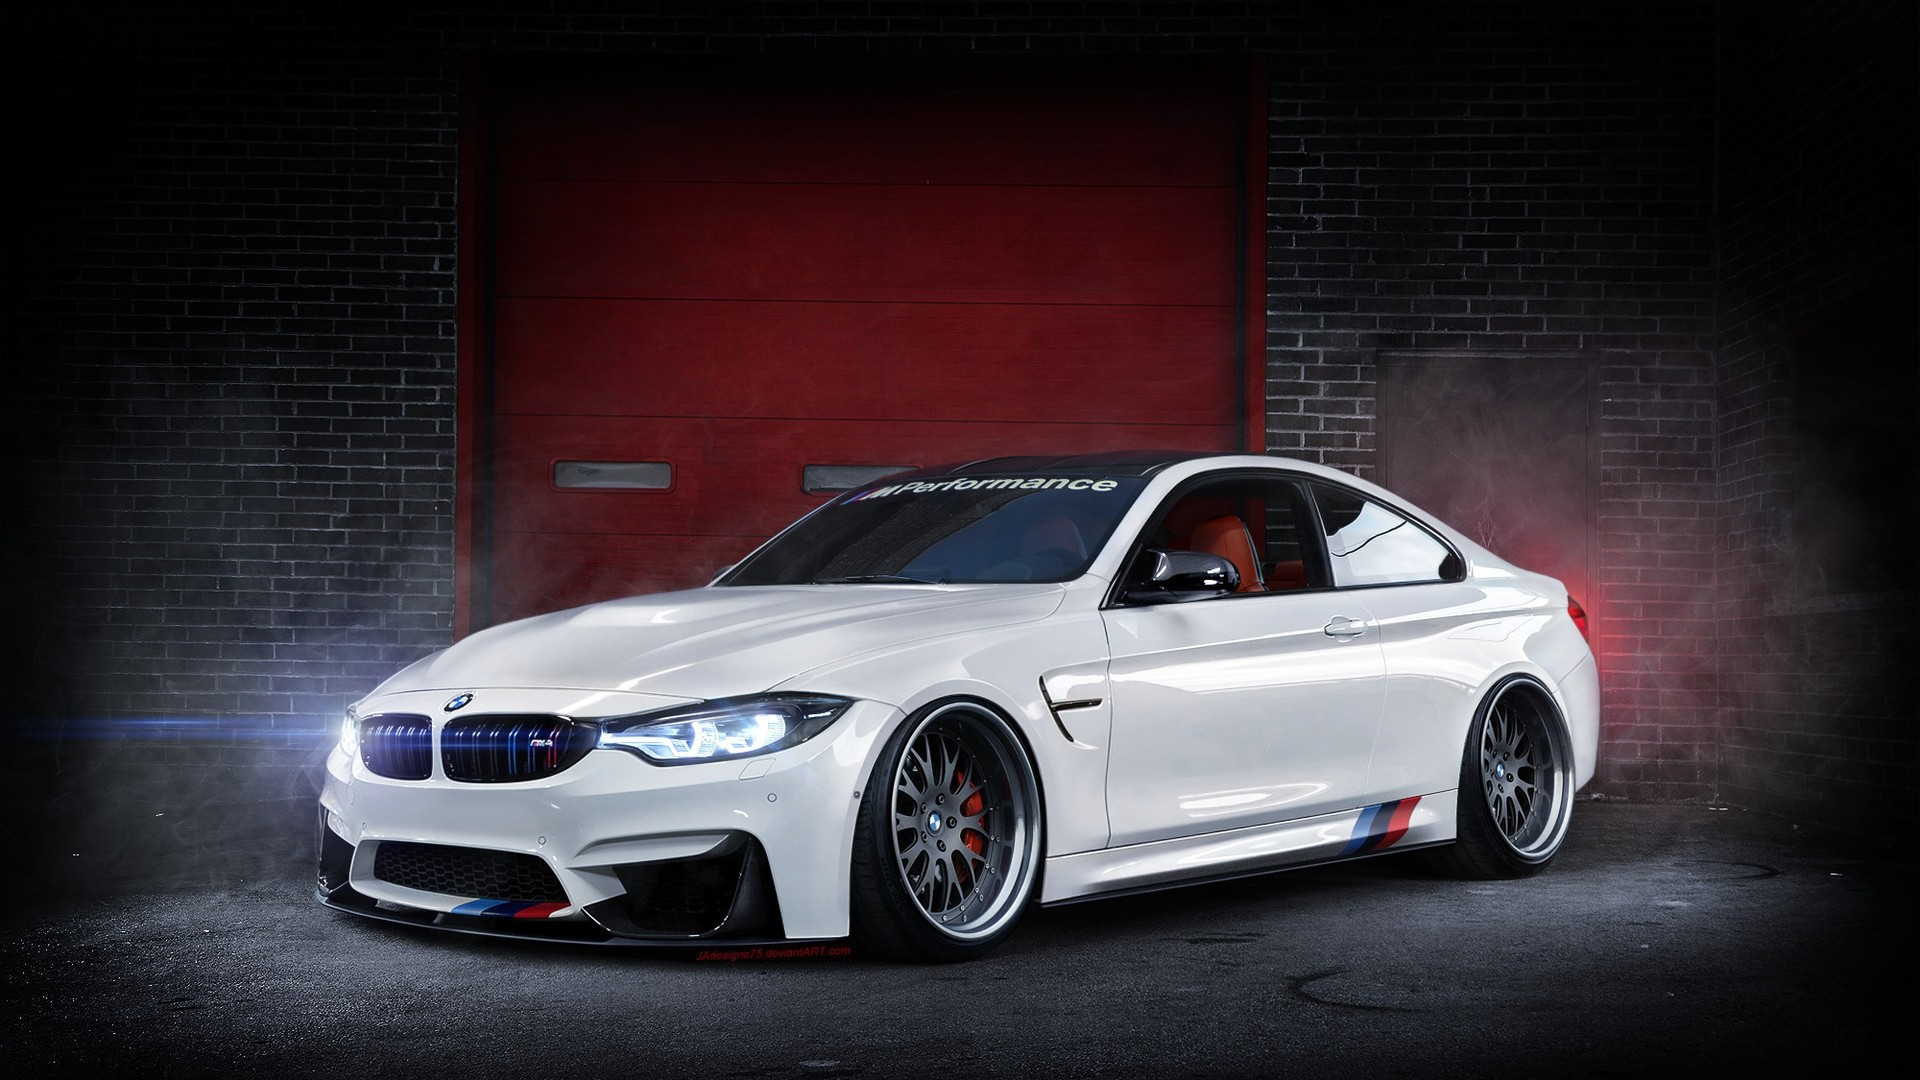 1920x1080 Filename: BMW-F82-M4-1920-x-1080-HDTV-1080p.jpeg